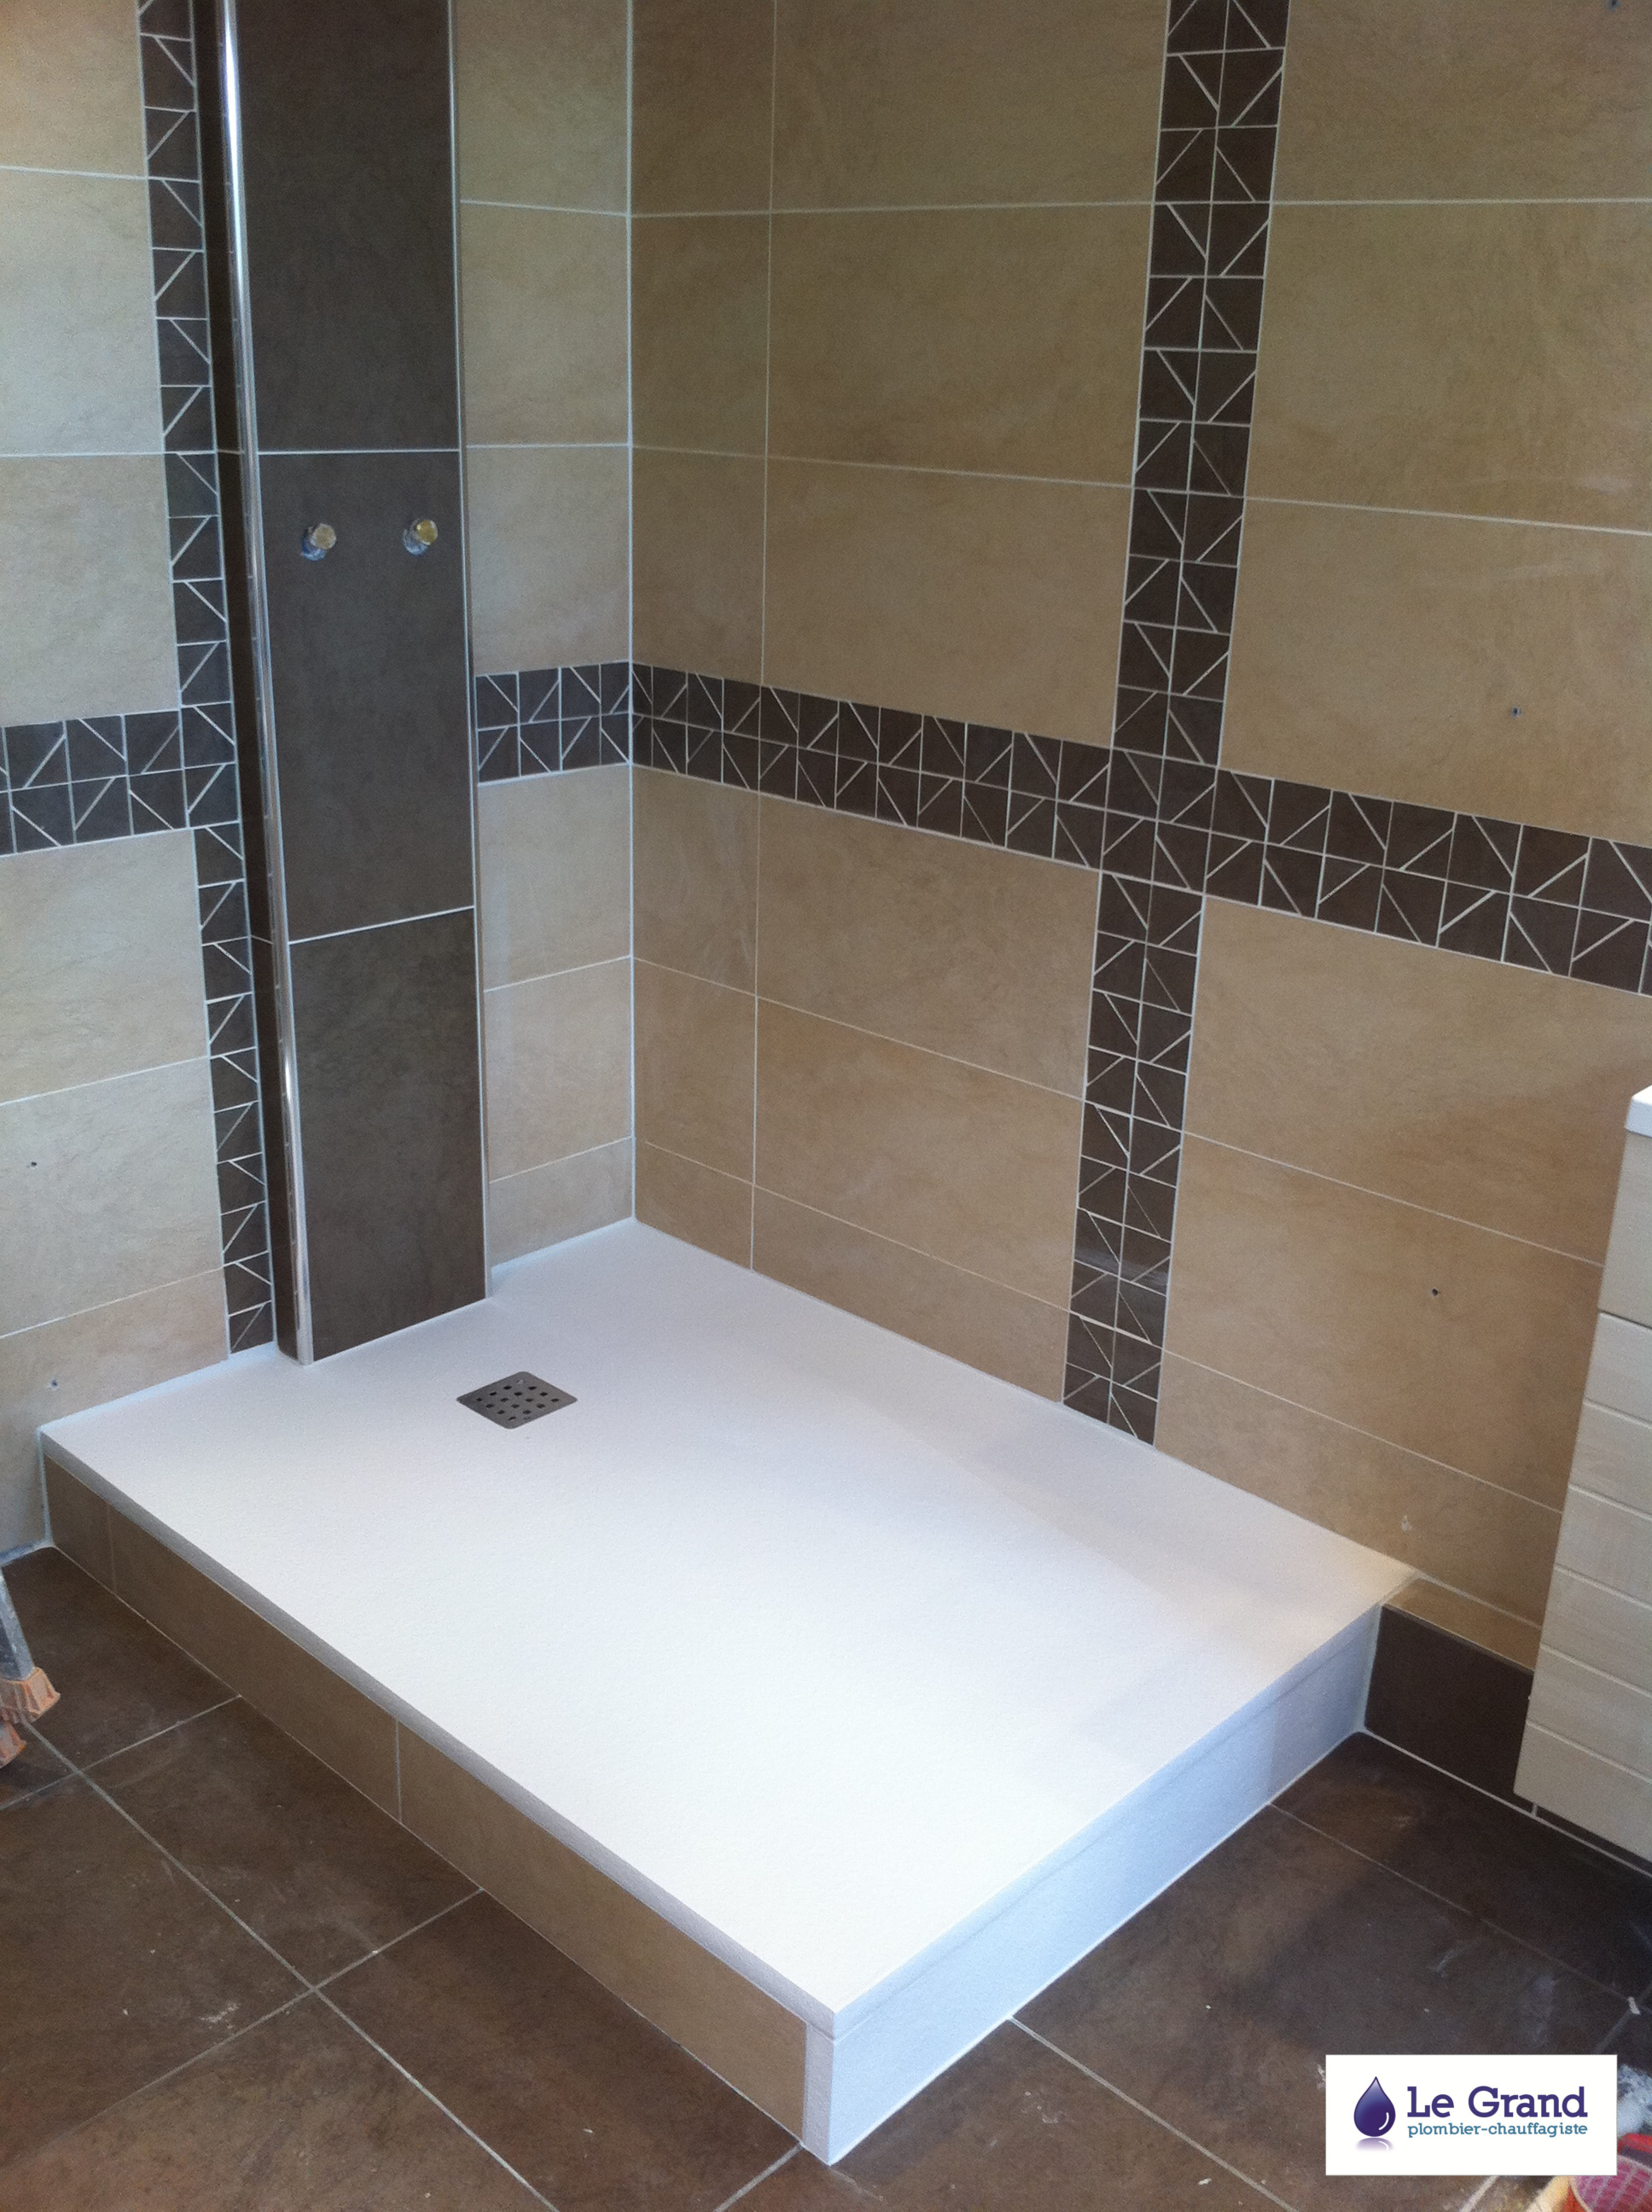 301 moved permanently - Salle de bain marron et beige ...